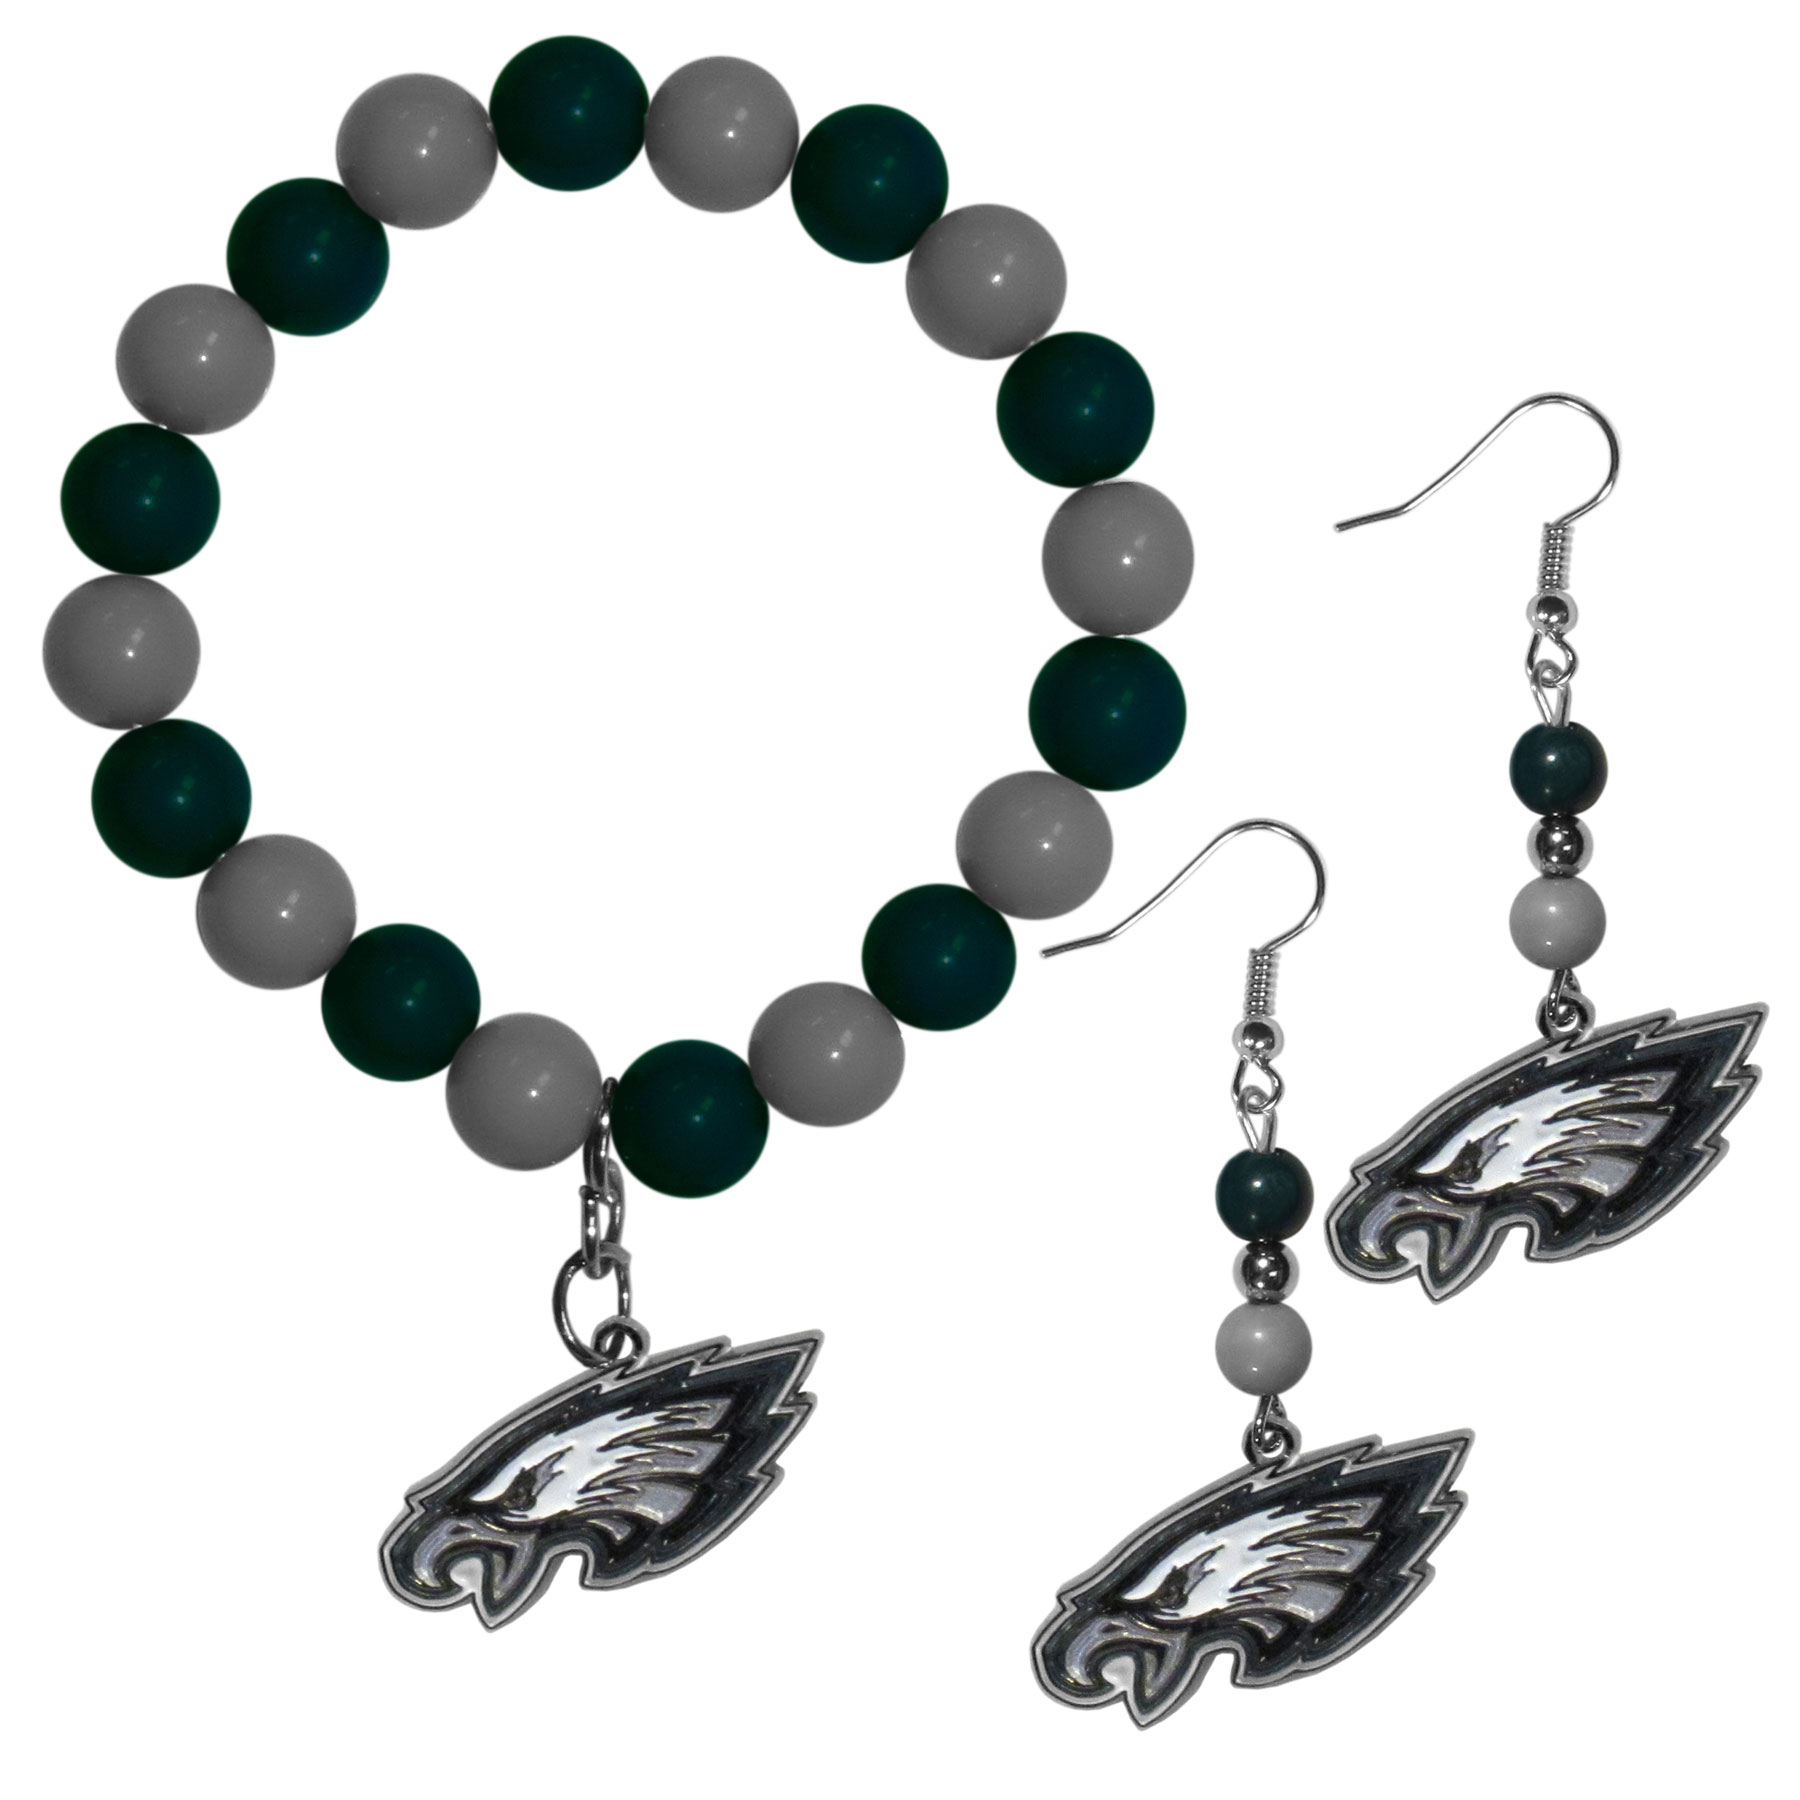 Philadelphia Eagles Fan Bead Earrings and Bracelet Set - This fun and colorful Philadelphia Eagles fan bead jewelry set is fun and casual with eye-catching beads in bright team colors. The fashionable dangle earrings feature a team colored beads that drop down to a carved and enameled charm. The stretch bracelet has larger matching beads that make a striking statement and have a matching team charm. These sassy yet sporty jewelry pieces make a perfect gift for any female fan. Spice up your game-day outfit with these fun colorful earrings and bracelet that are also cute enough for any day.